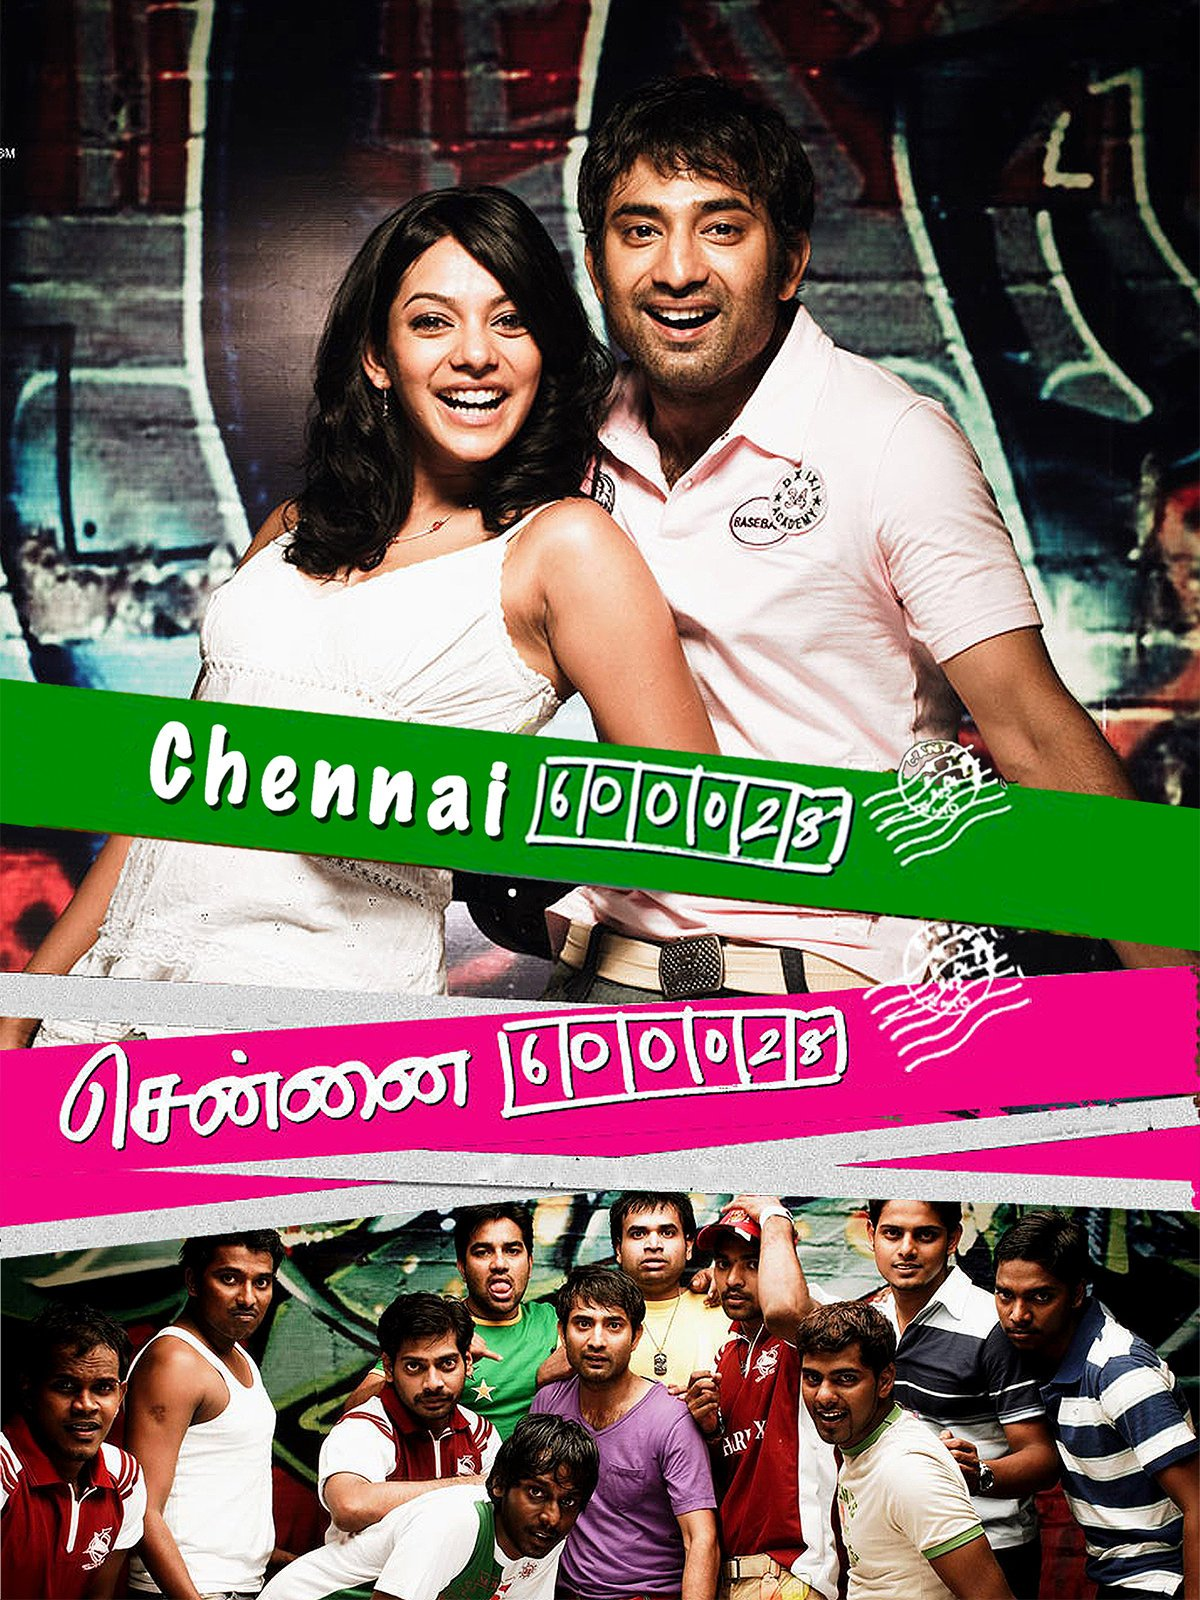 Chennai 600028 (2021) Hindi Dubbed 720p HDRip x264 AAC 1.4GB Download